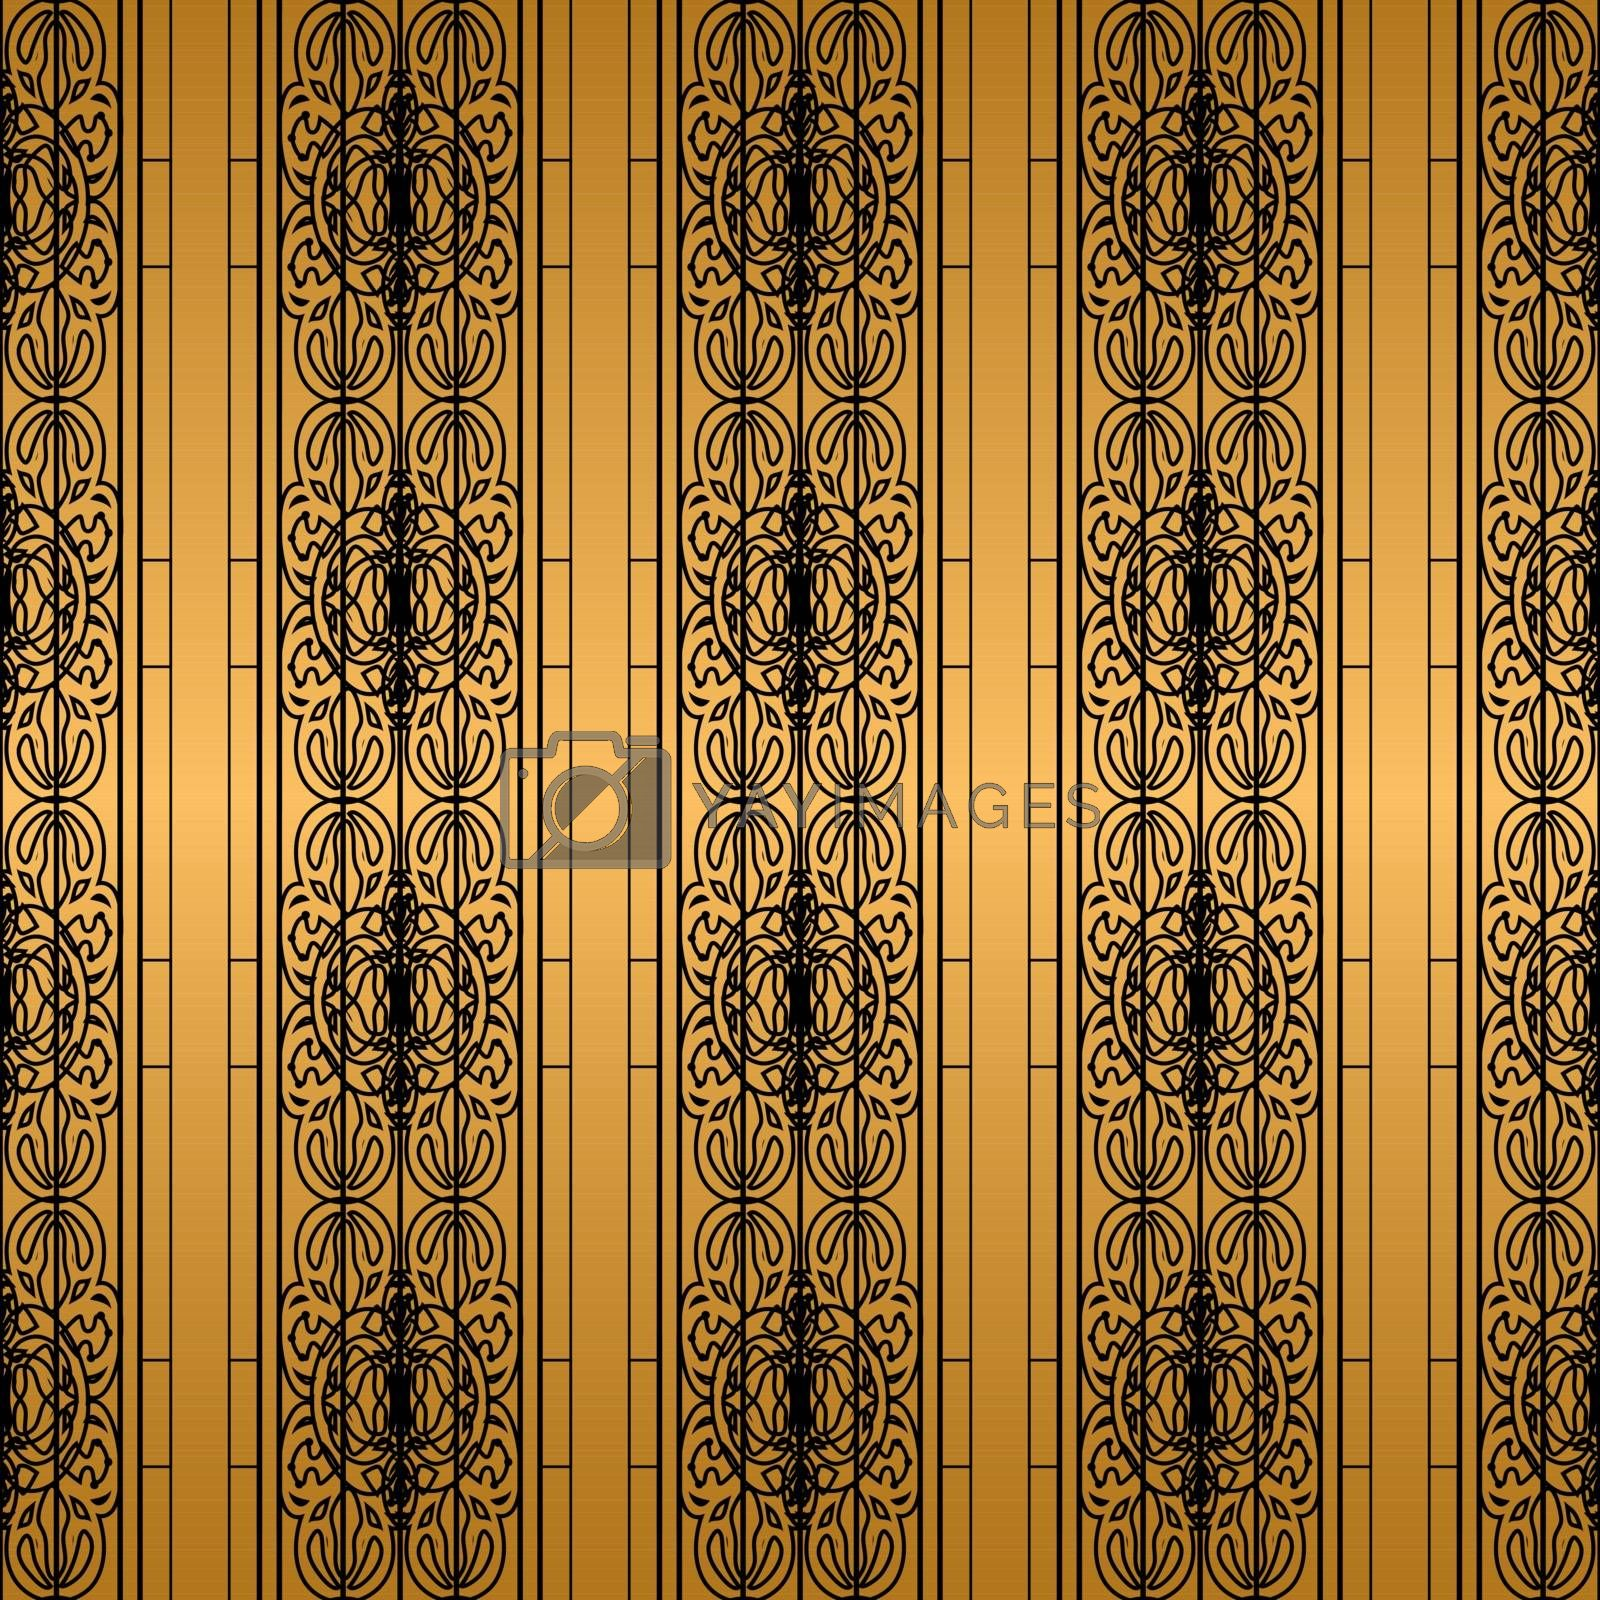 luxury black and gold wallpaper pattern with elegant victorian tracery